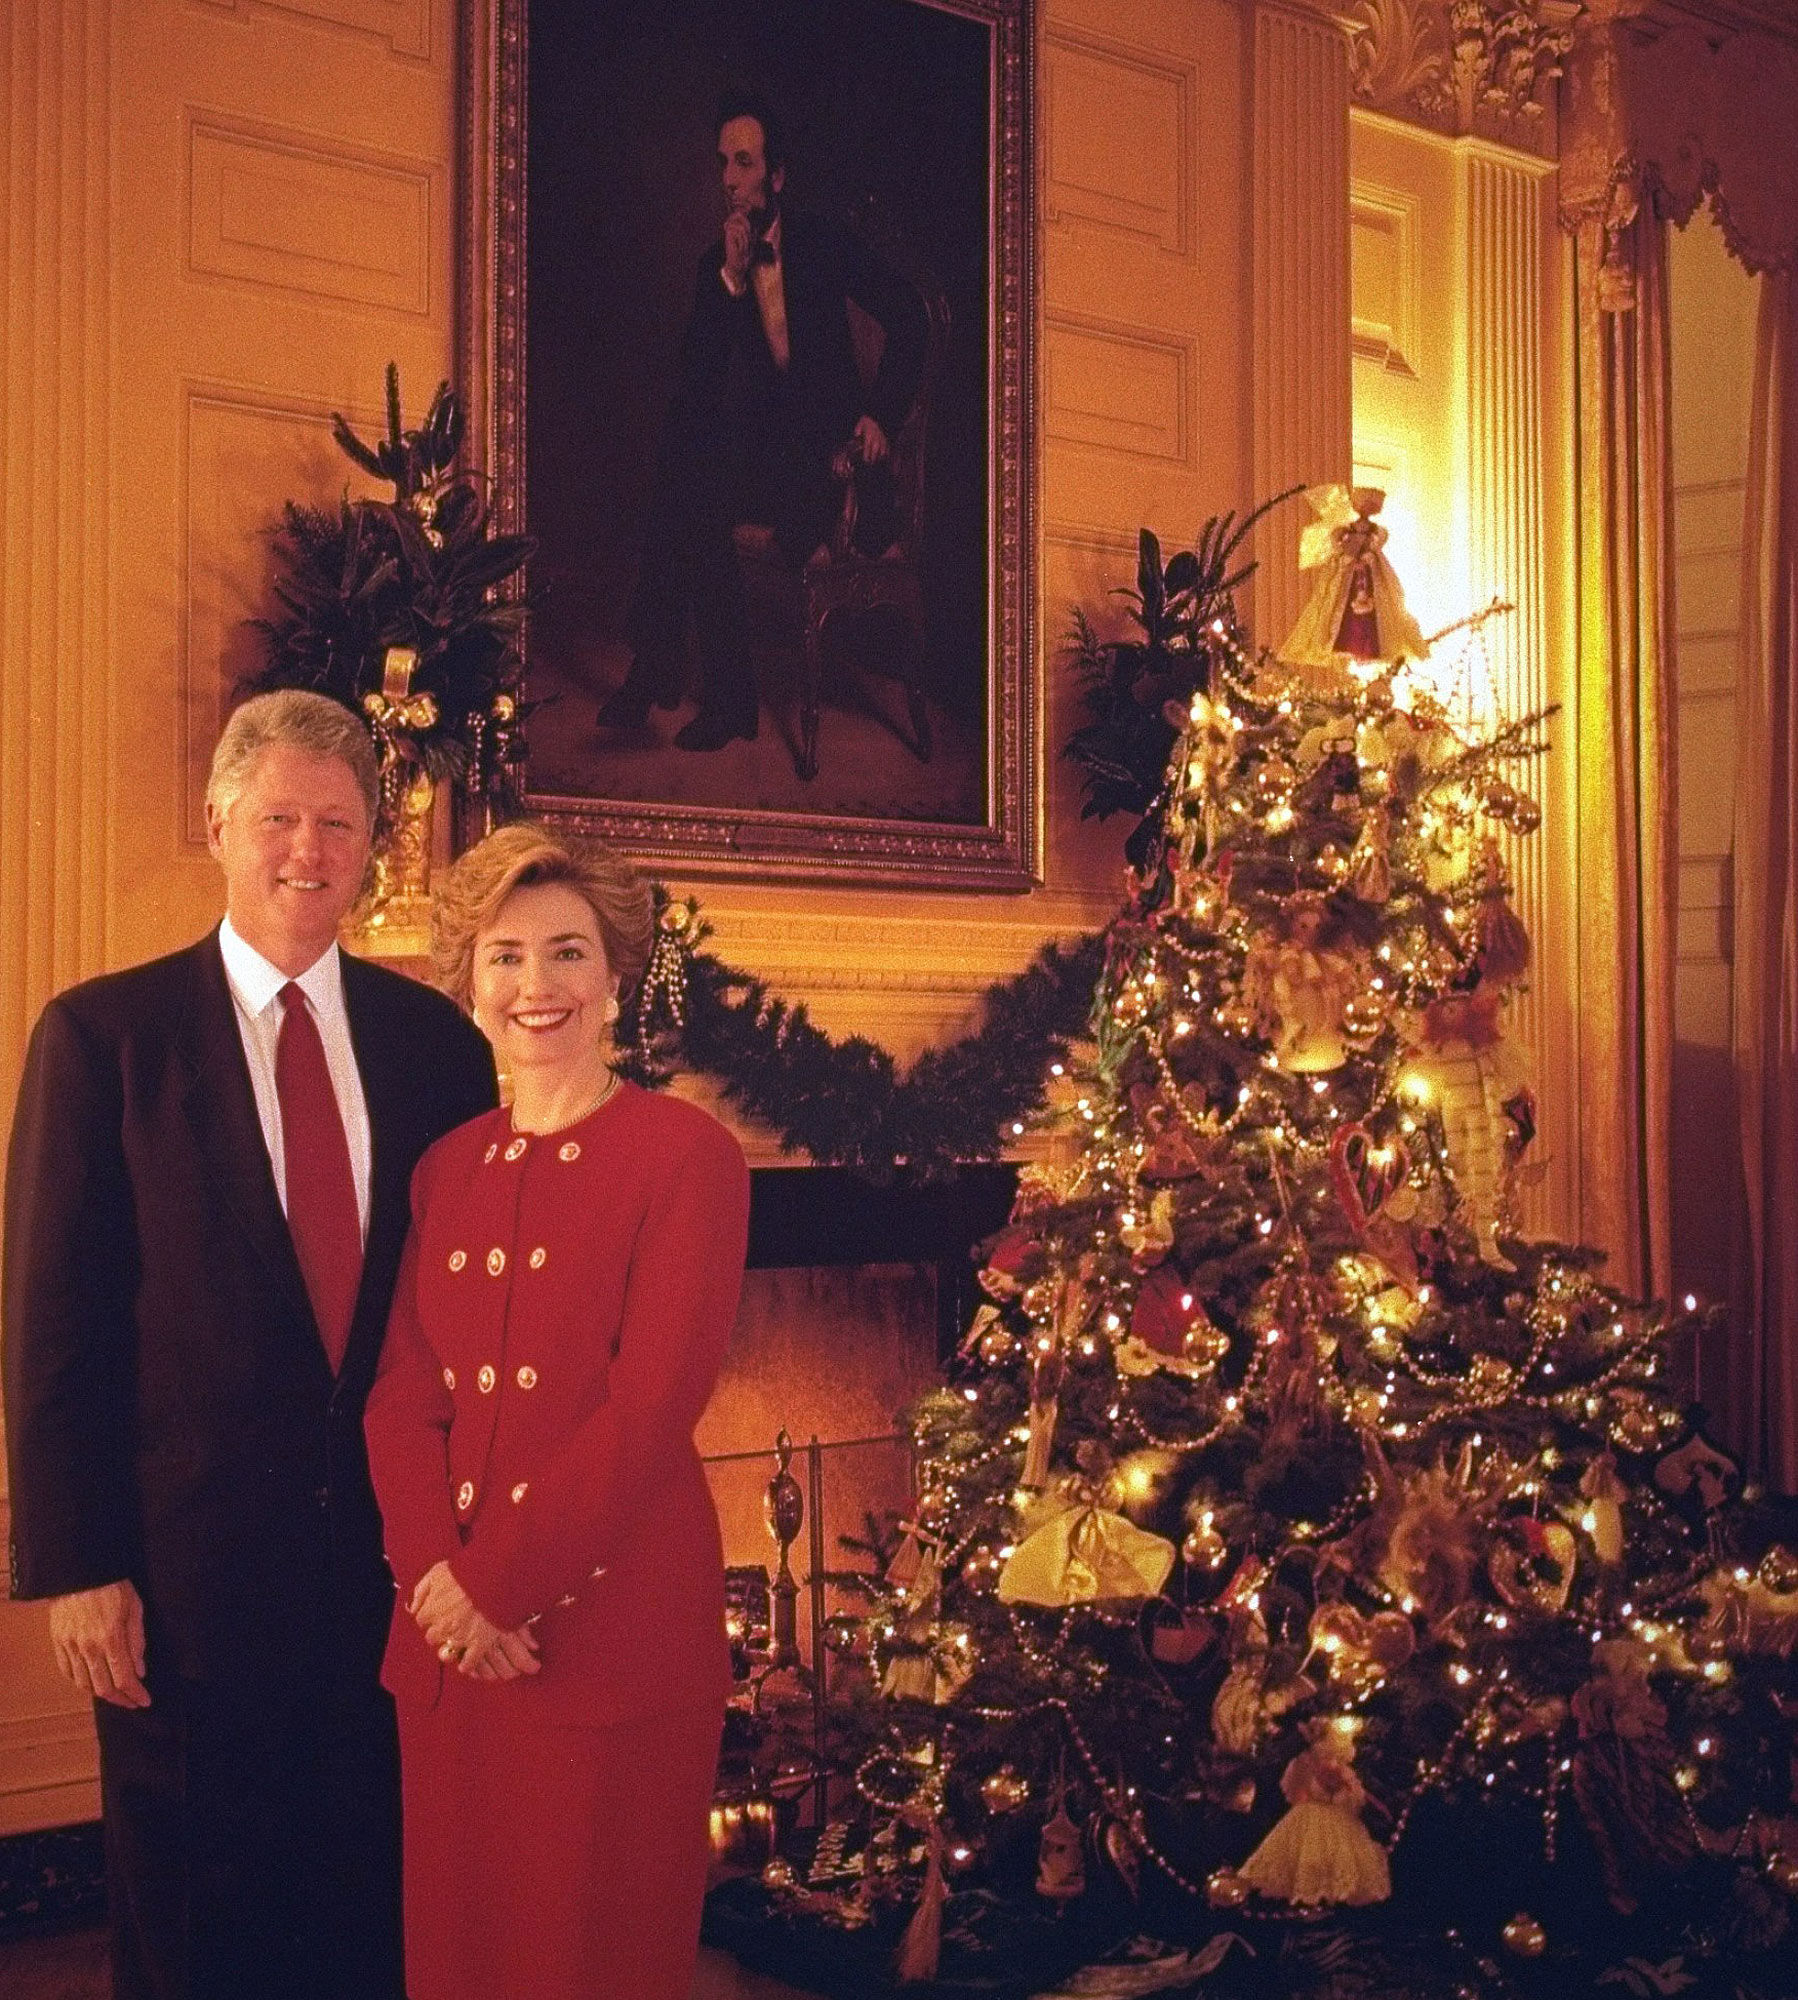 CLINTON CHRISTMAS CARD